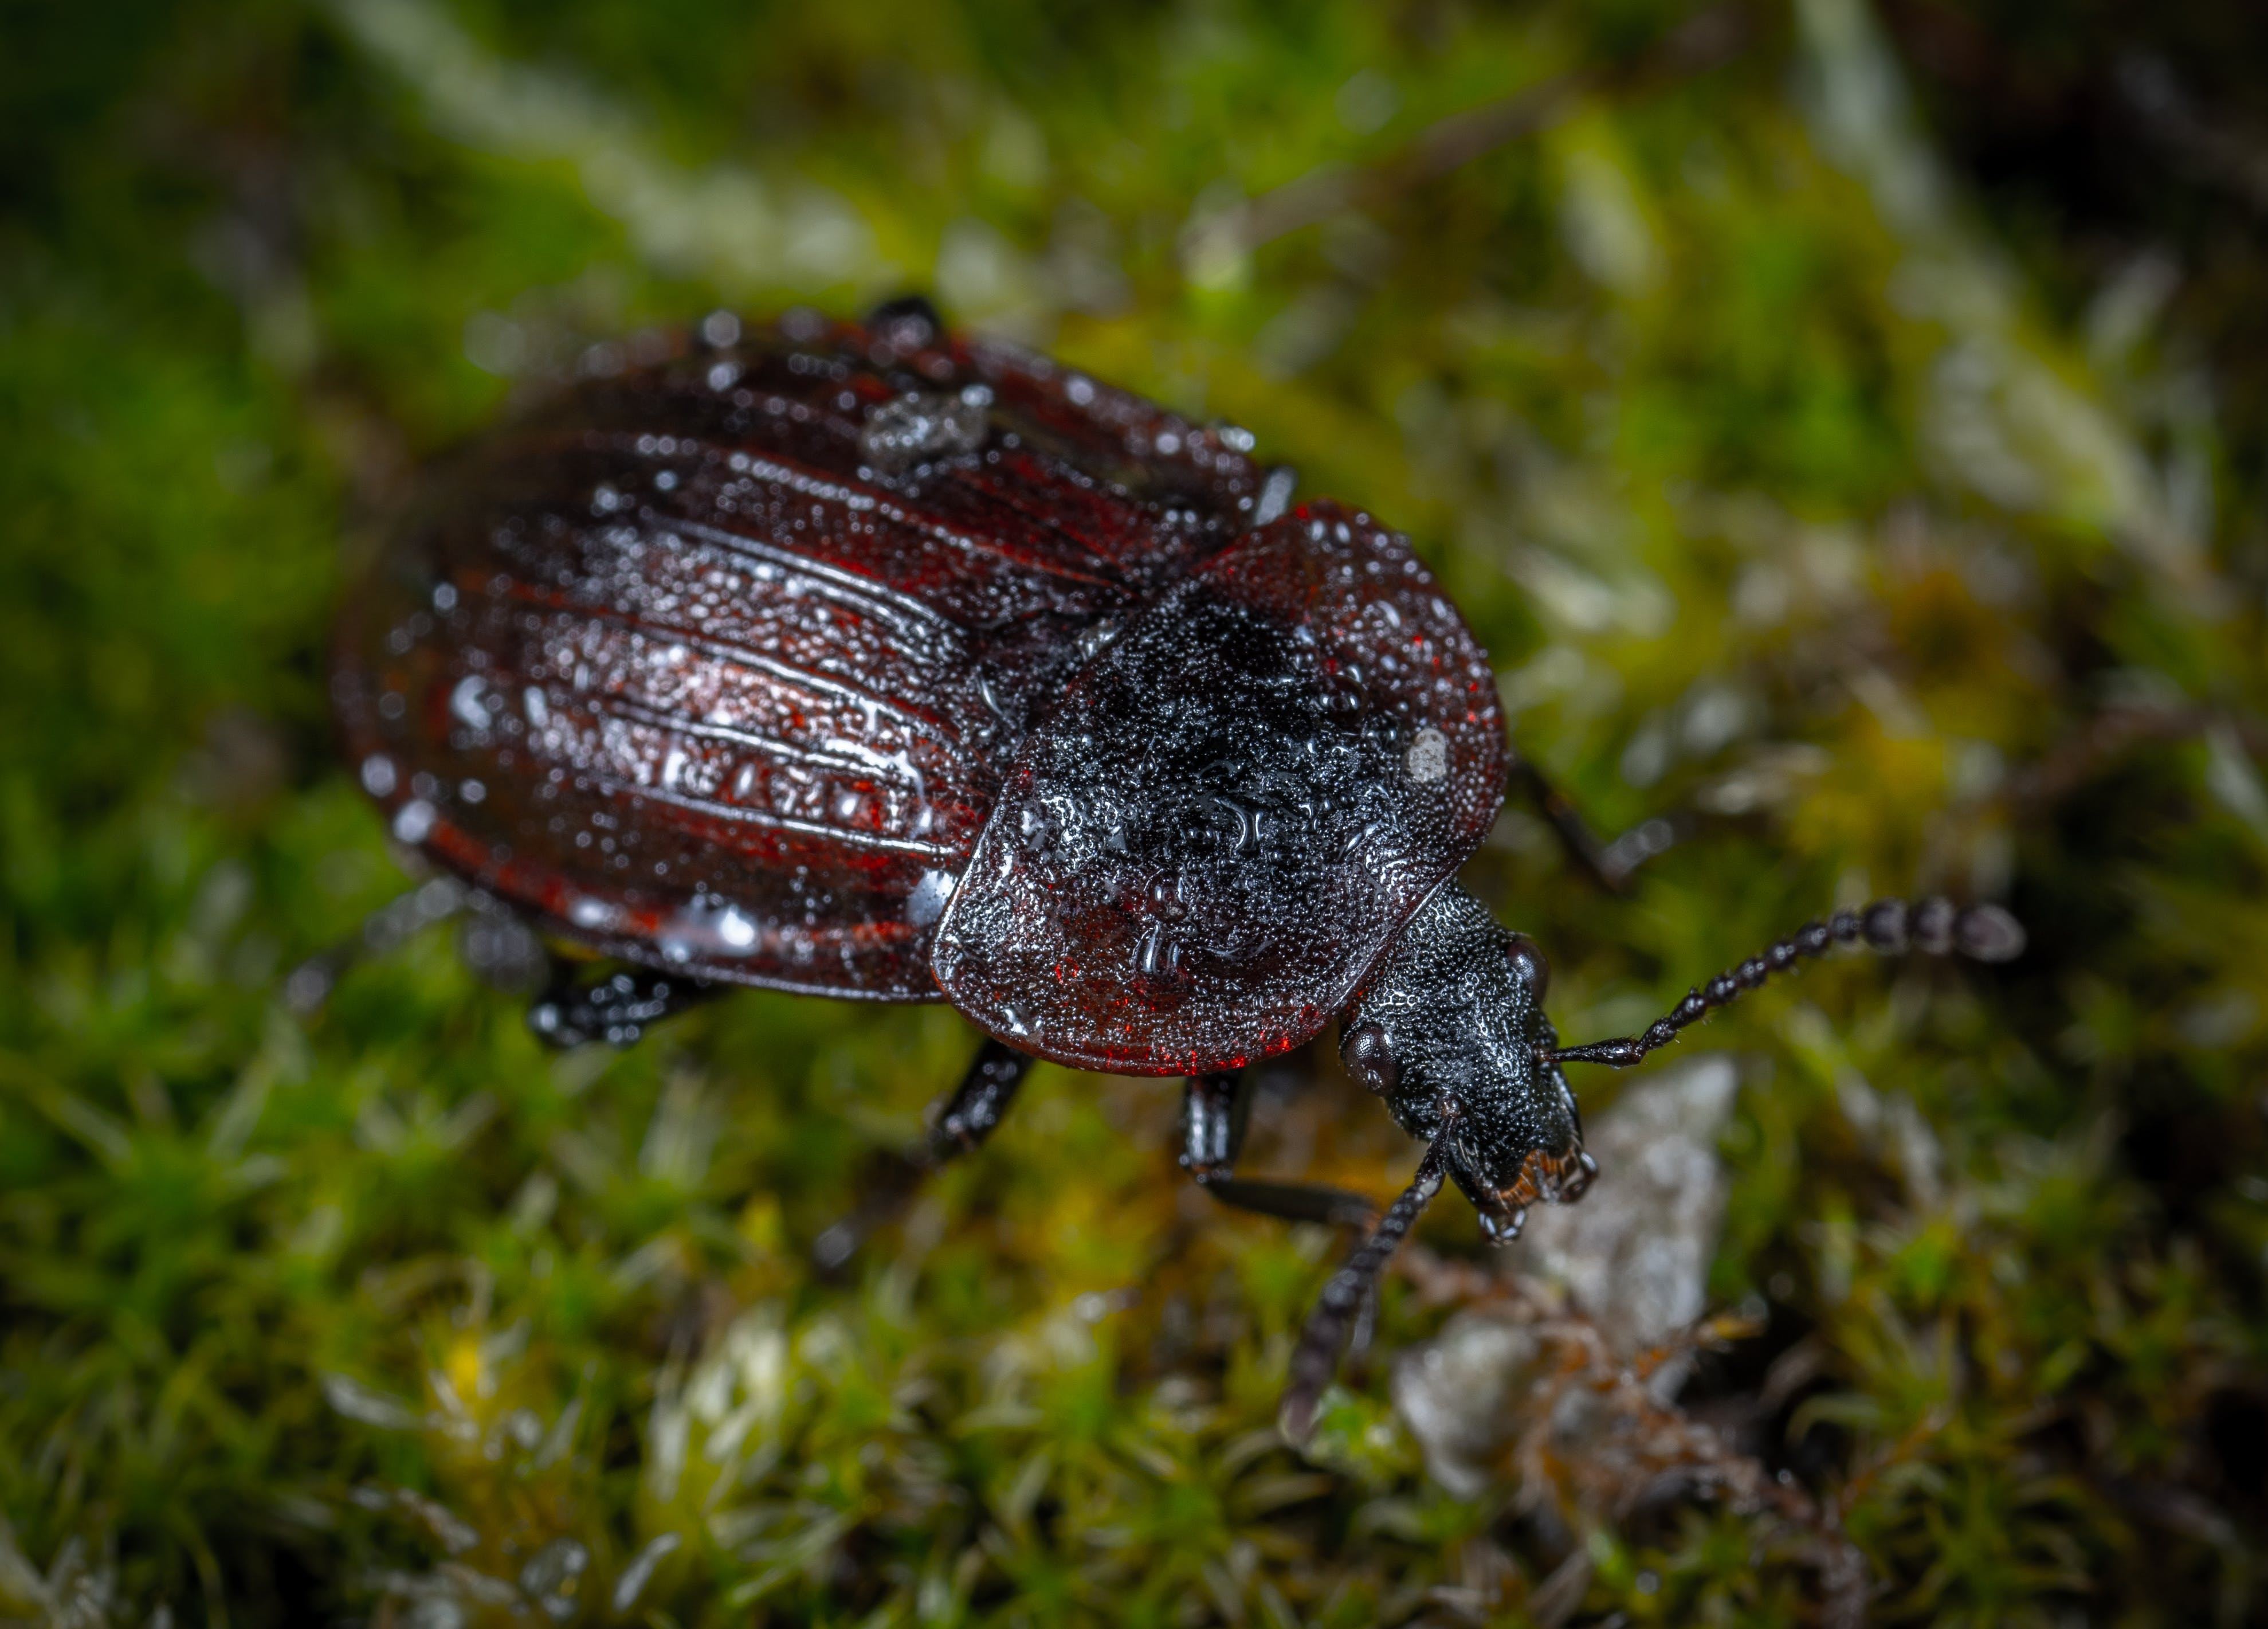 Closeup Photo of Brown and Black Beetle on Green Grass